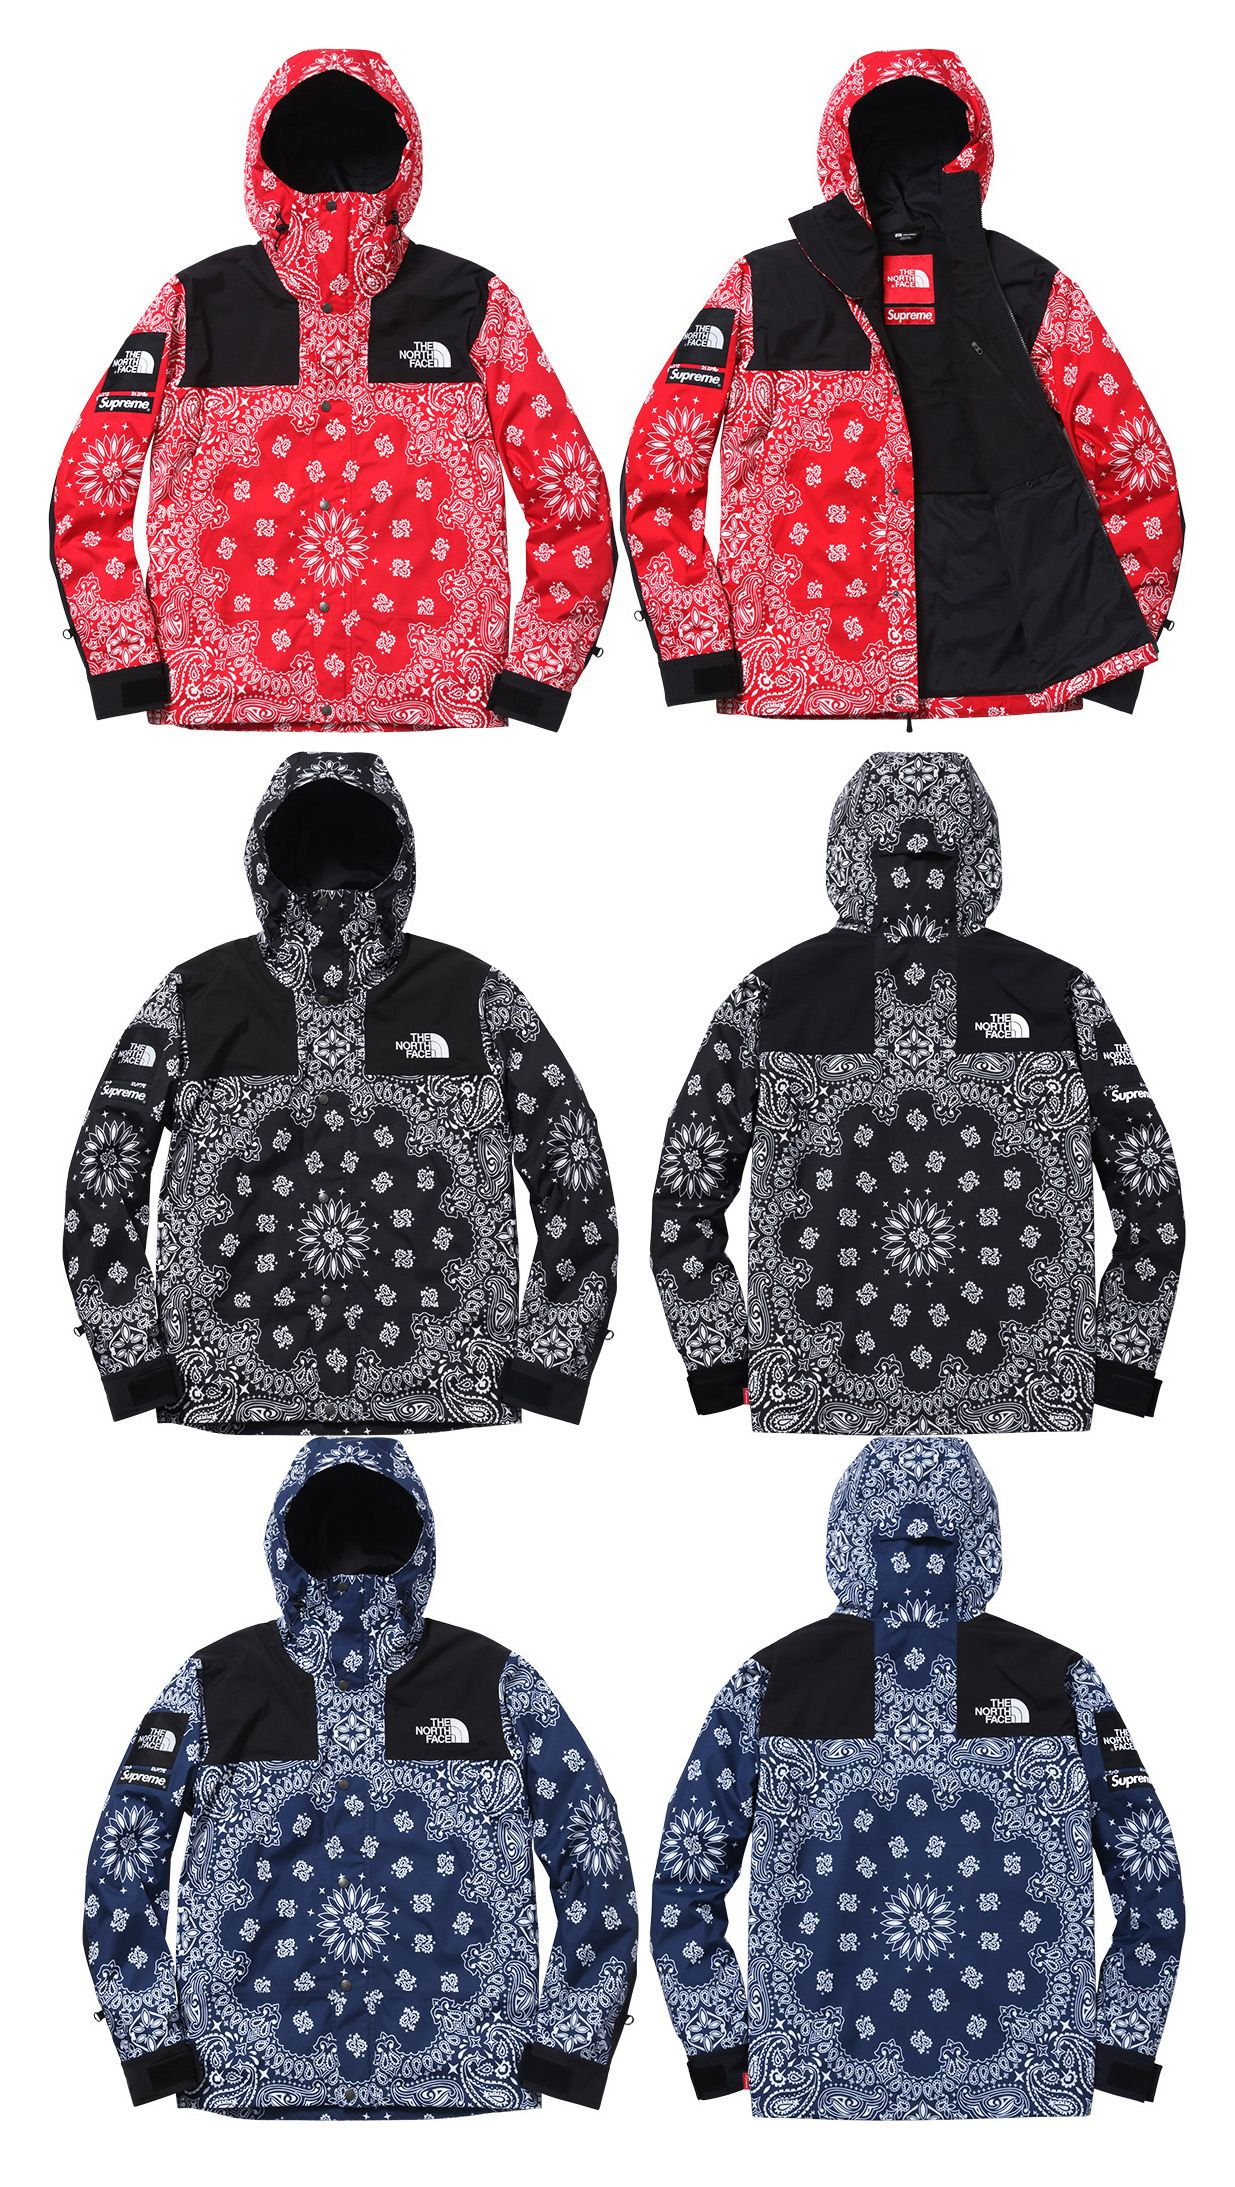 Supreme x The North Face Autumn Winter 2014